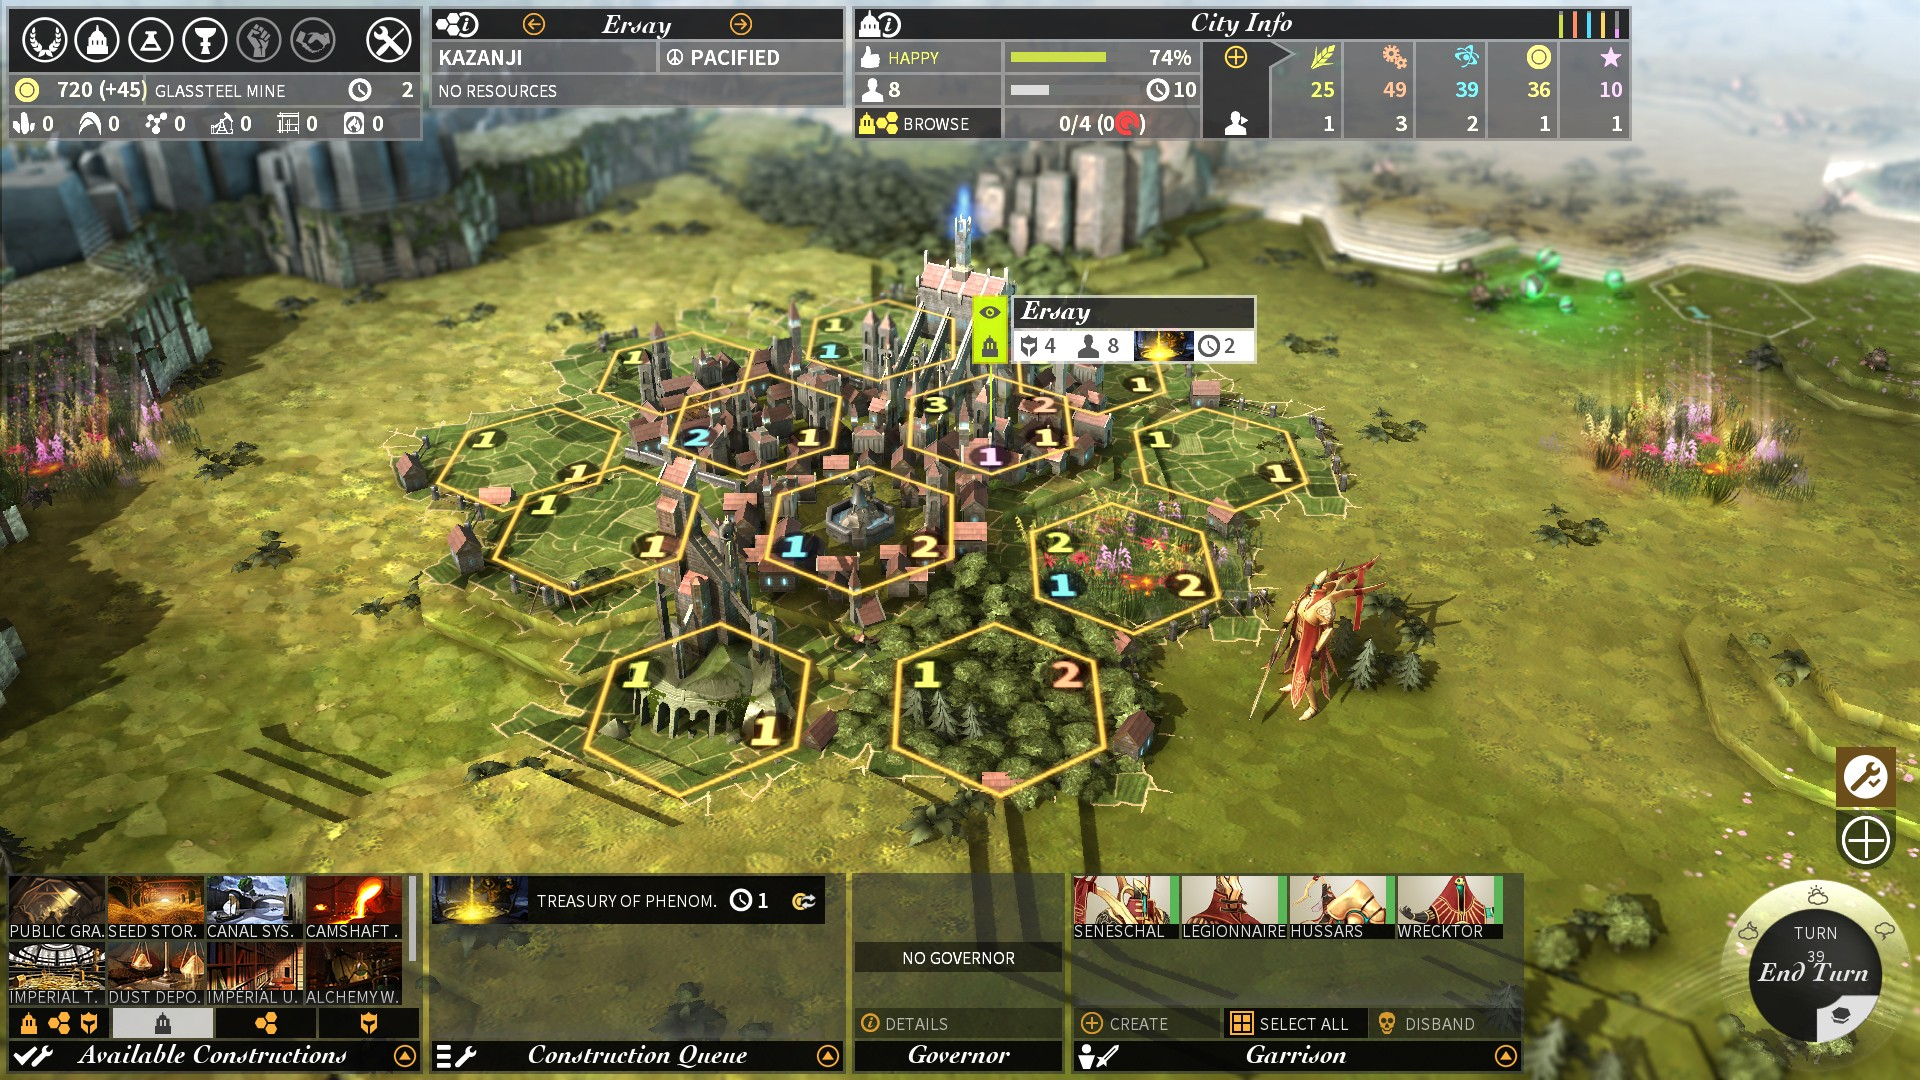 endless_legend_-_town_view.jpg - Endless Legend